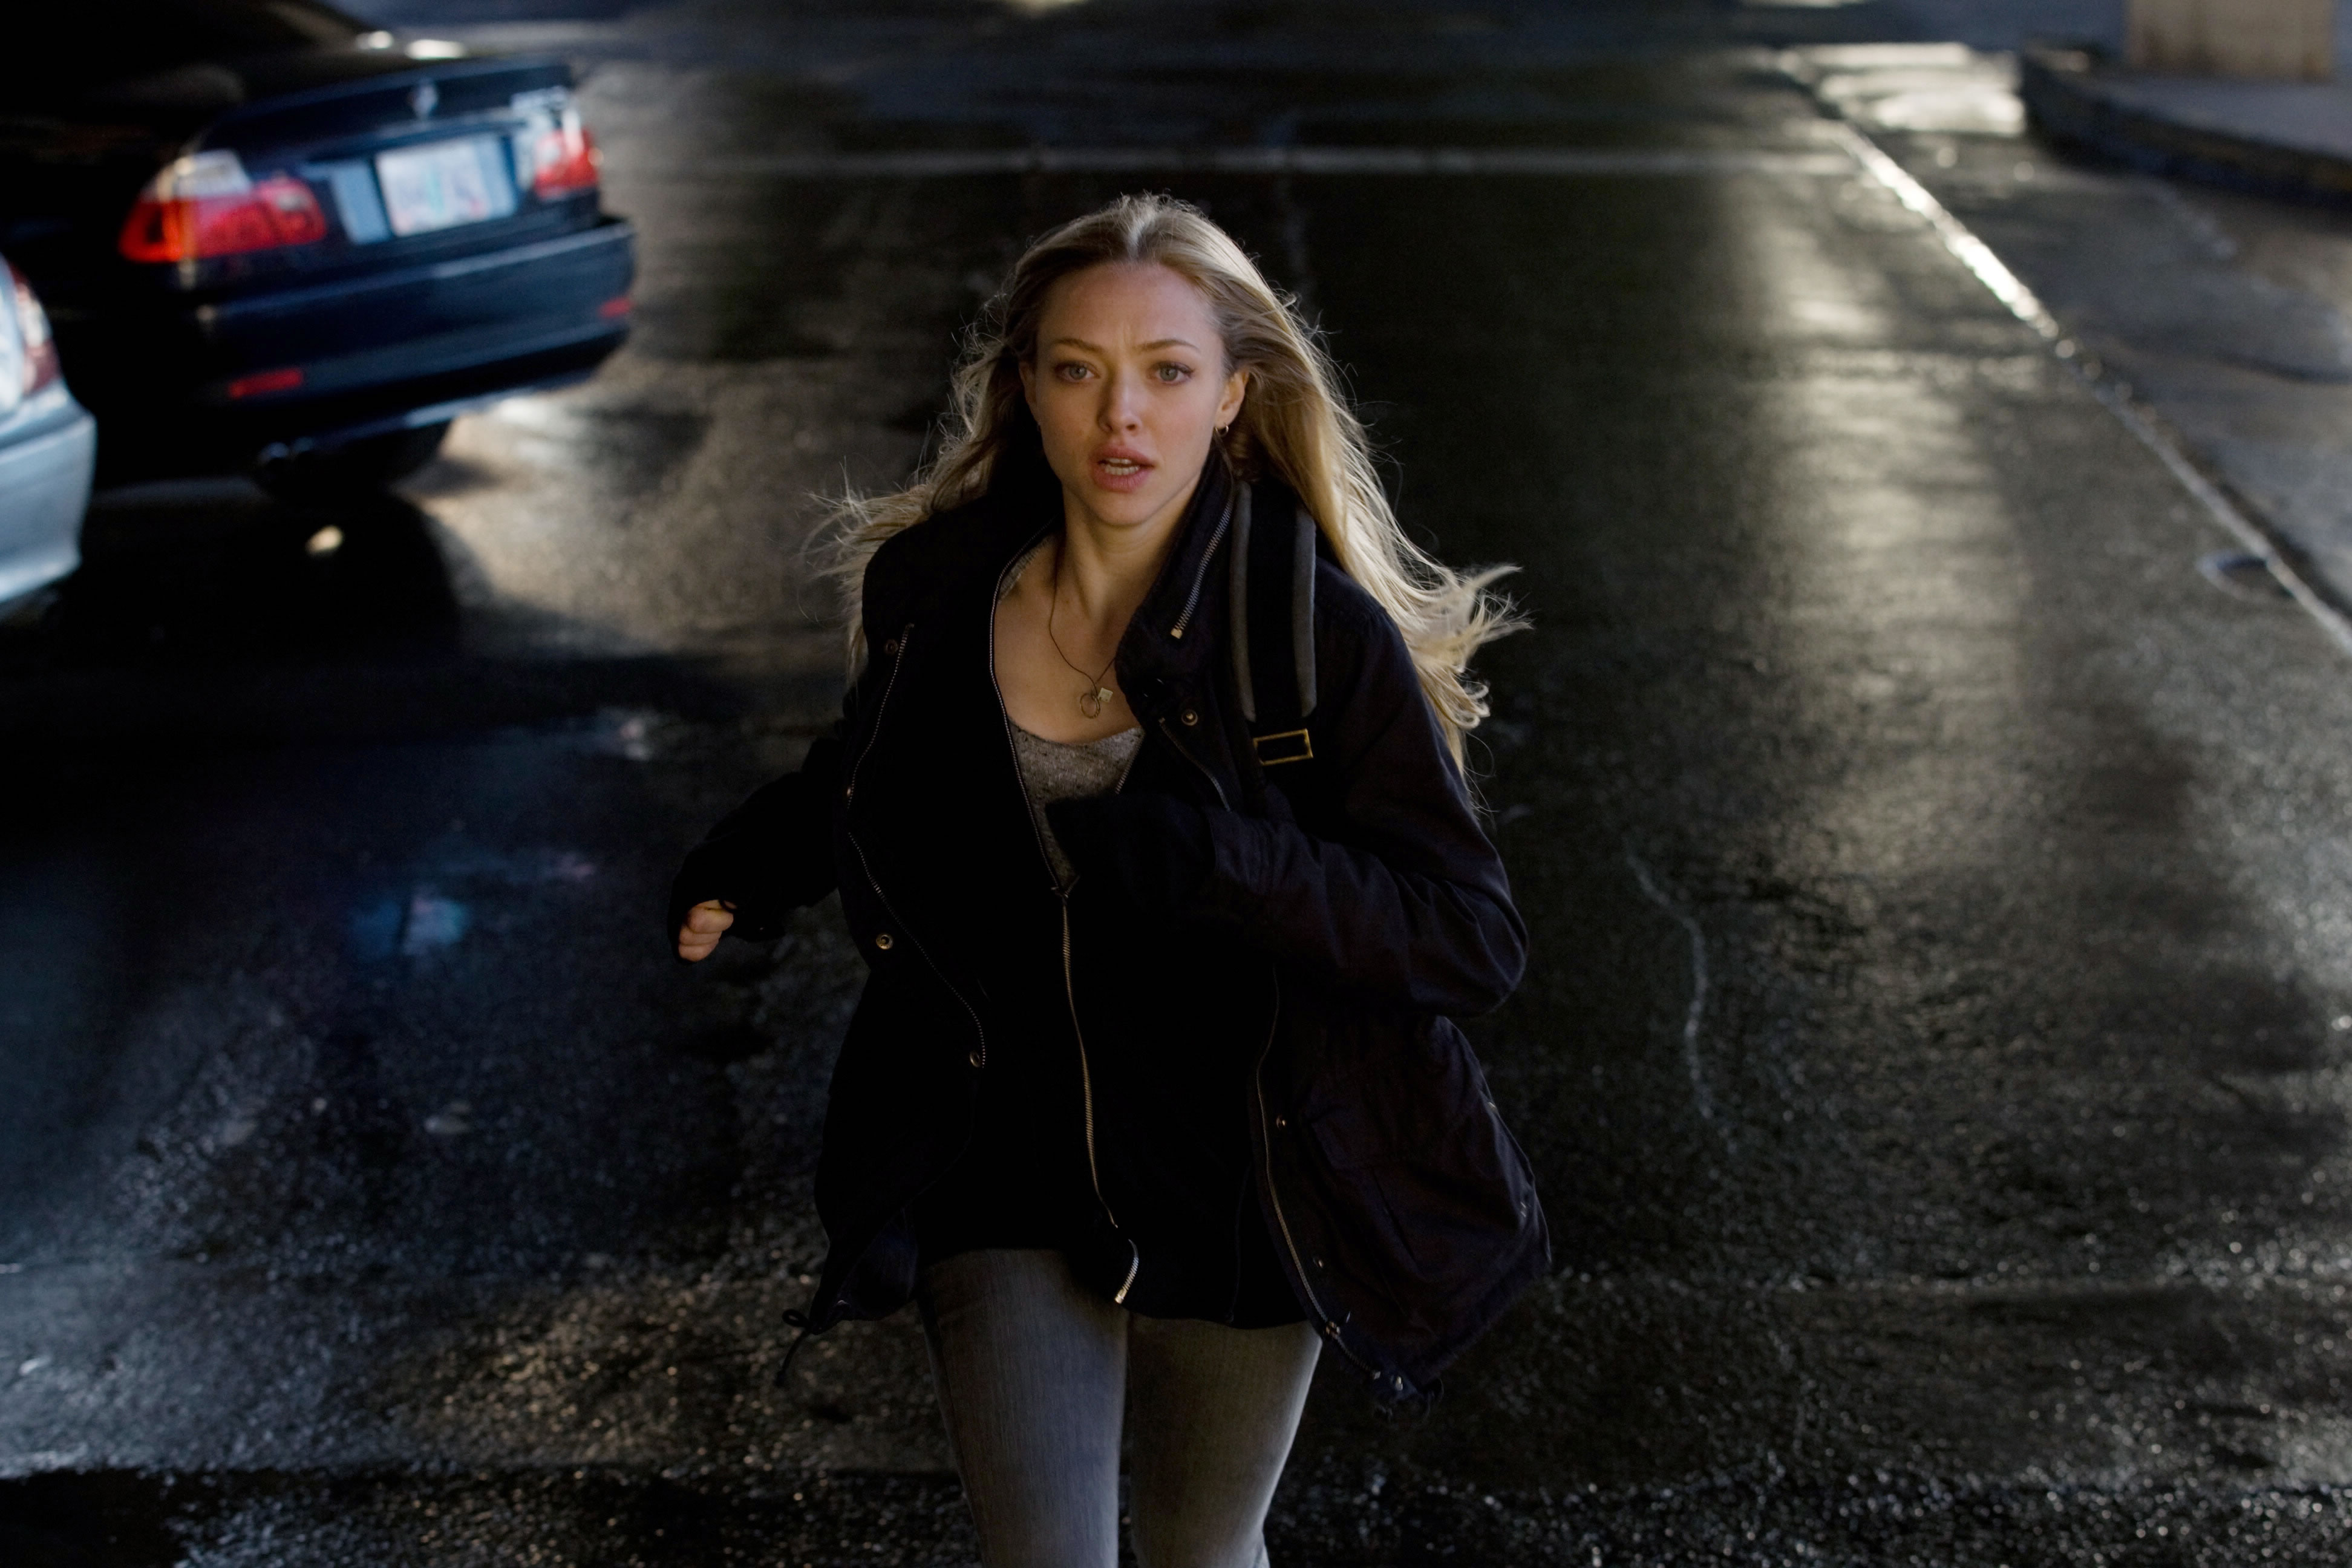 Full Movie Gone Baby Gone High Quality